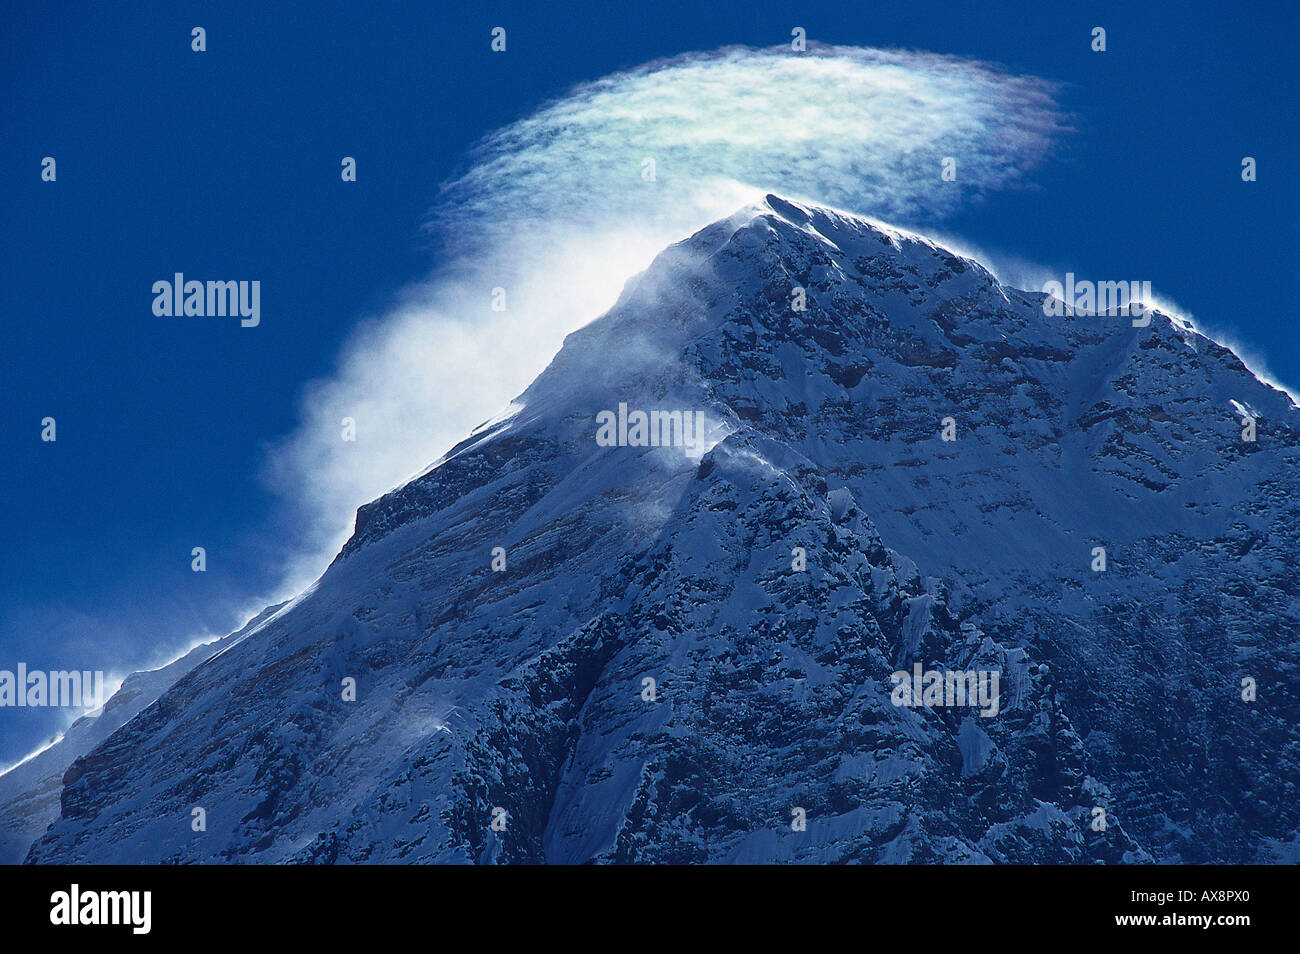 Mount Everest summit, 8.848 m, Solu Khumbu, Nepal, Himalaya - Stock Image